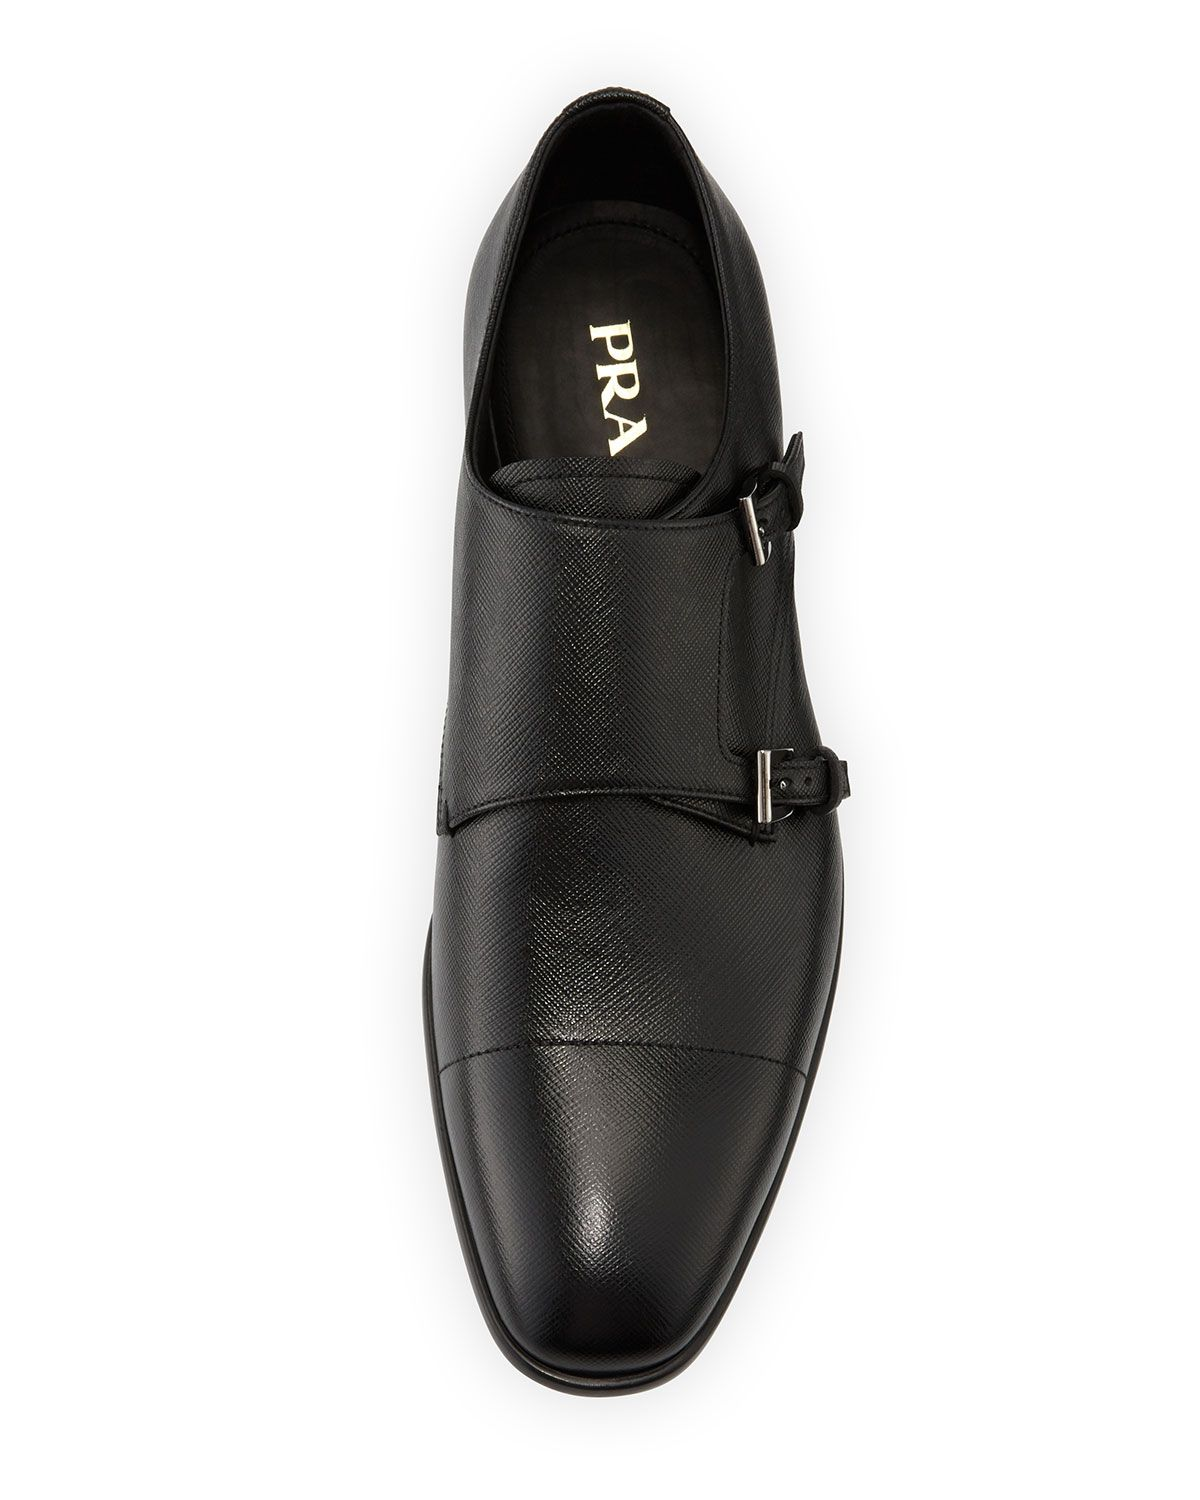 1a1d7096 Prada saffiano leather shoe. Double-monk strap across front. Cap toe.  Leather lining and insole. Stacked flat heel with metal logo insert. Rubber  outsole.